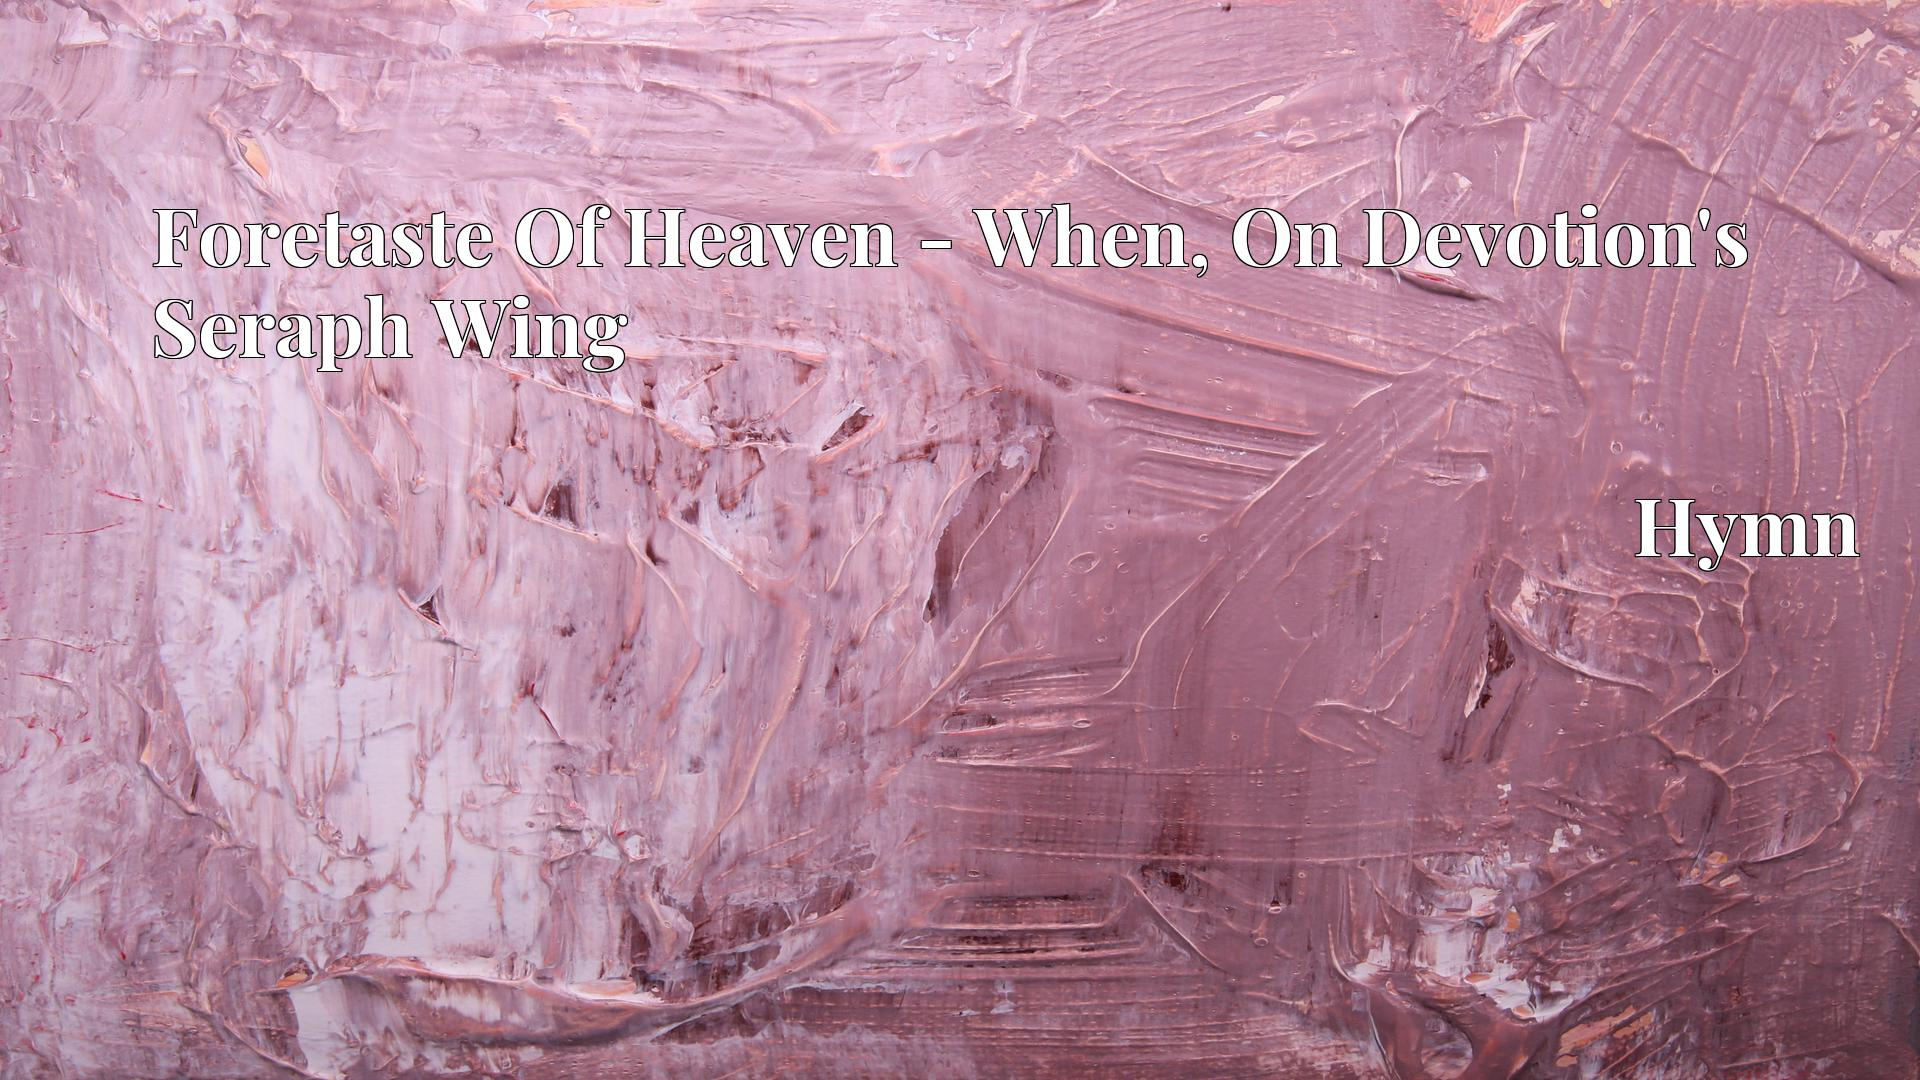 Foretaste Of Heaven - When, On Devotion's Seraph Wing - Hymn